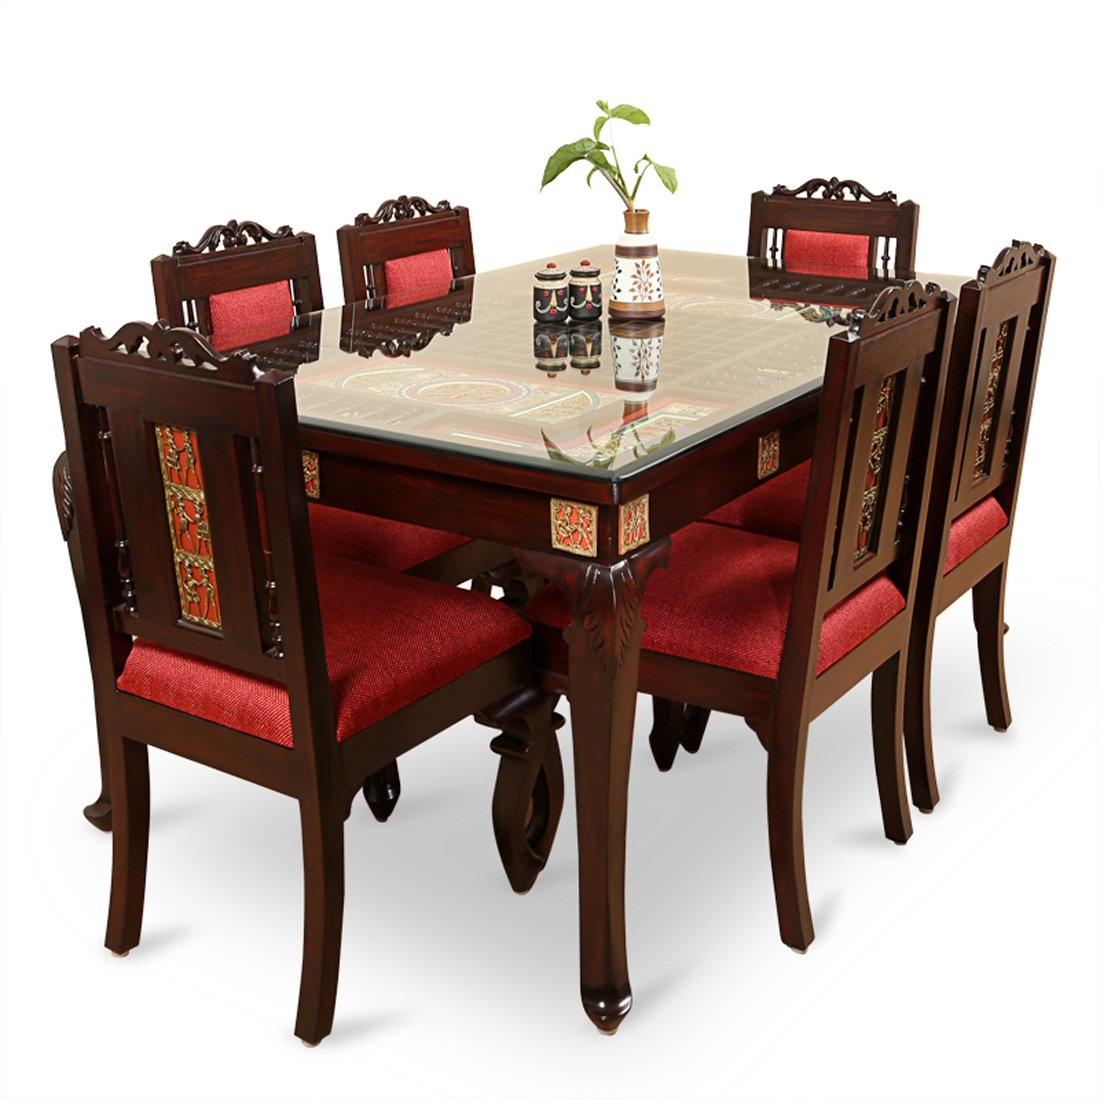 Exclusivelane Teak Wood Table And Chair With Warli And Dhokra Work 6 Seater Dining Set Amazon In Electronics